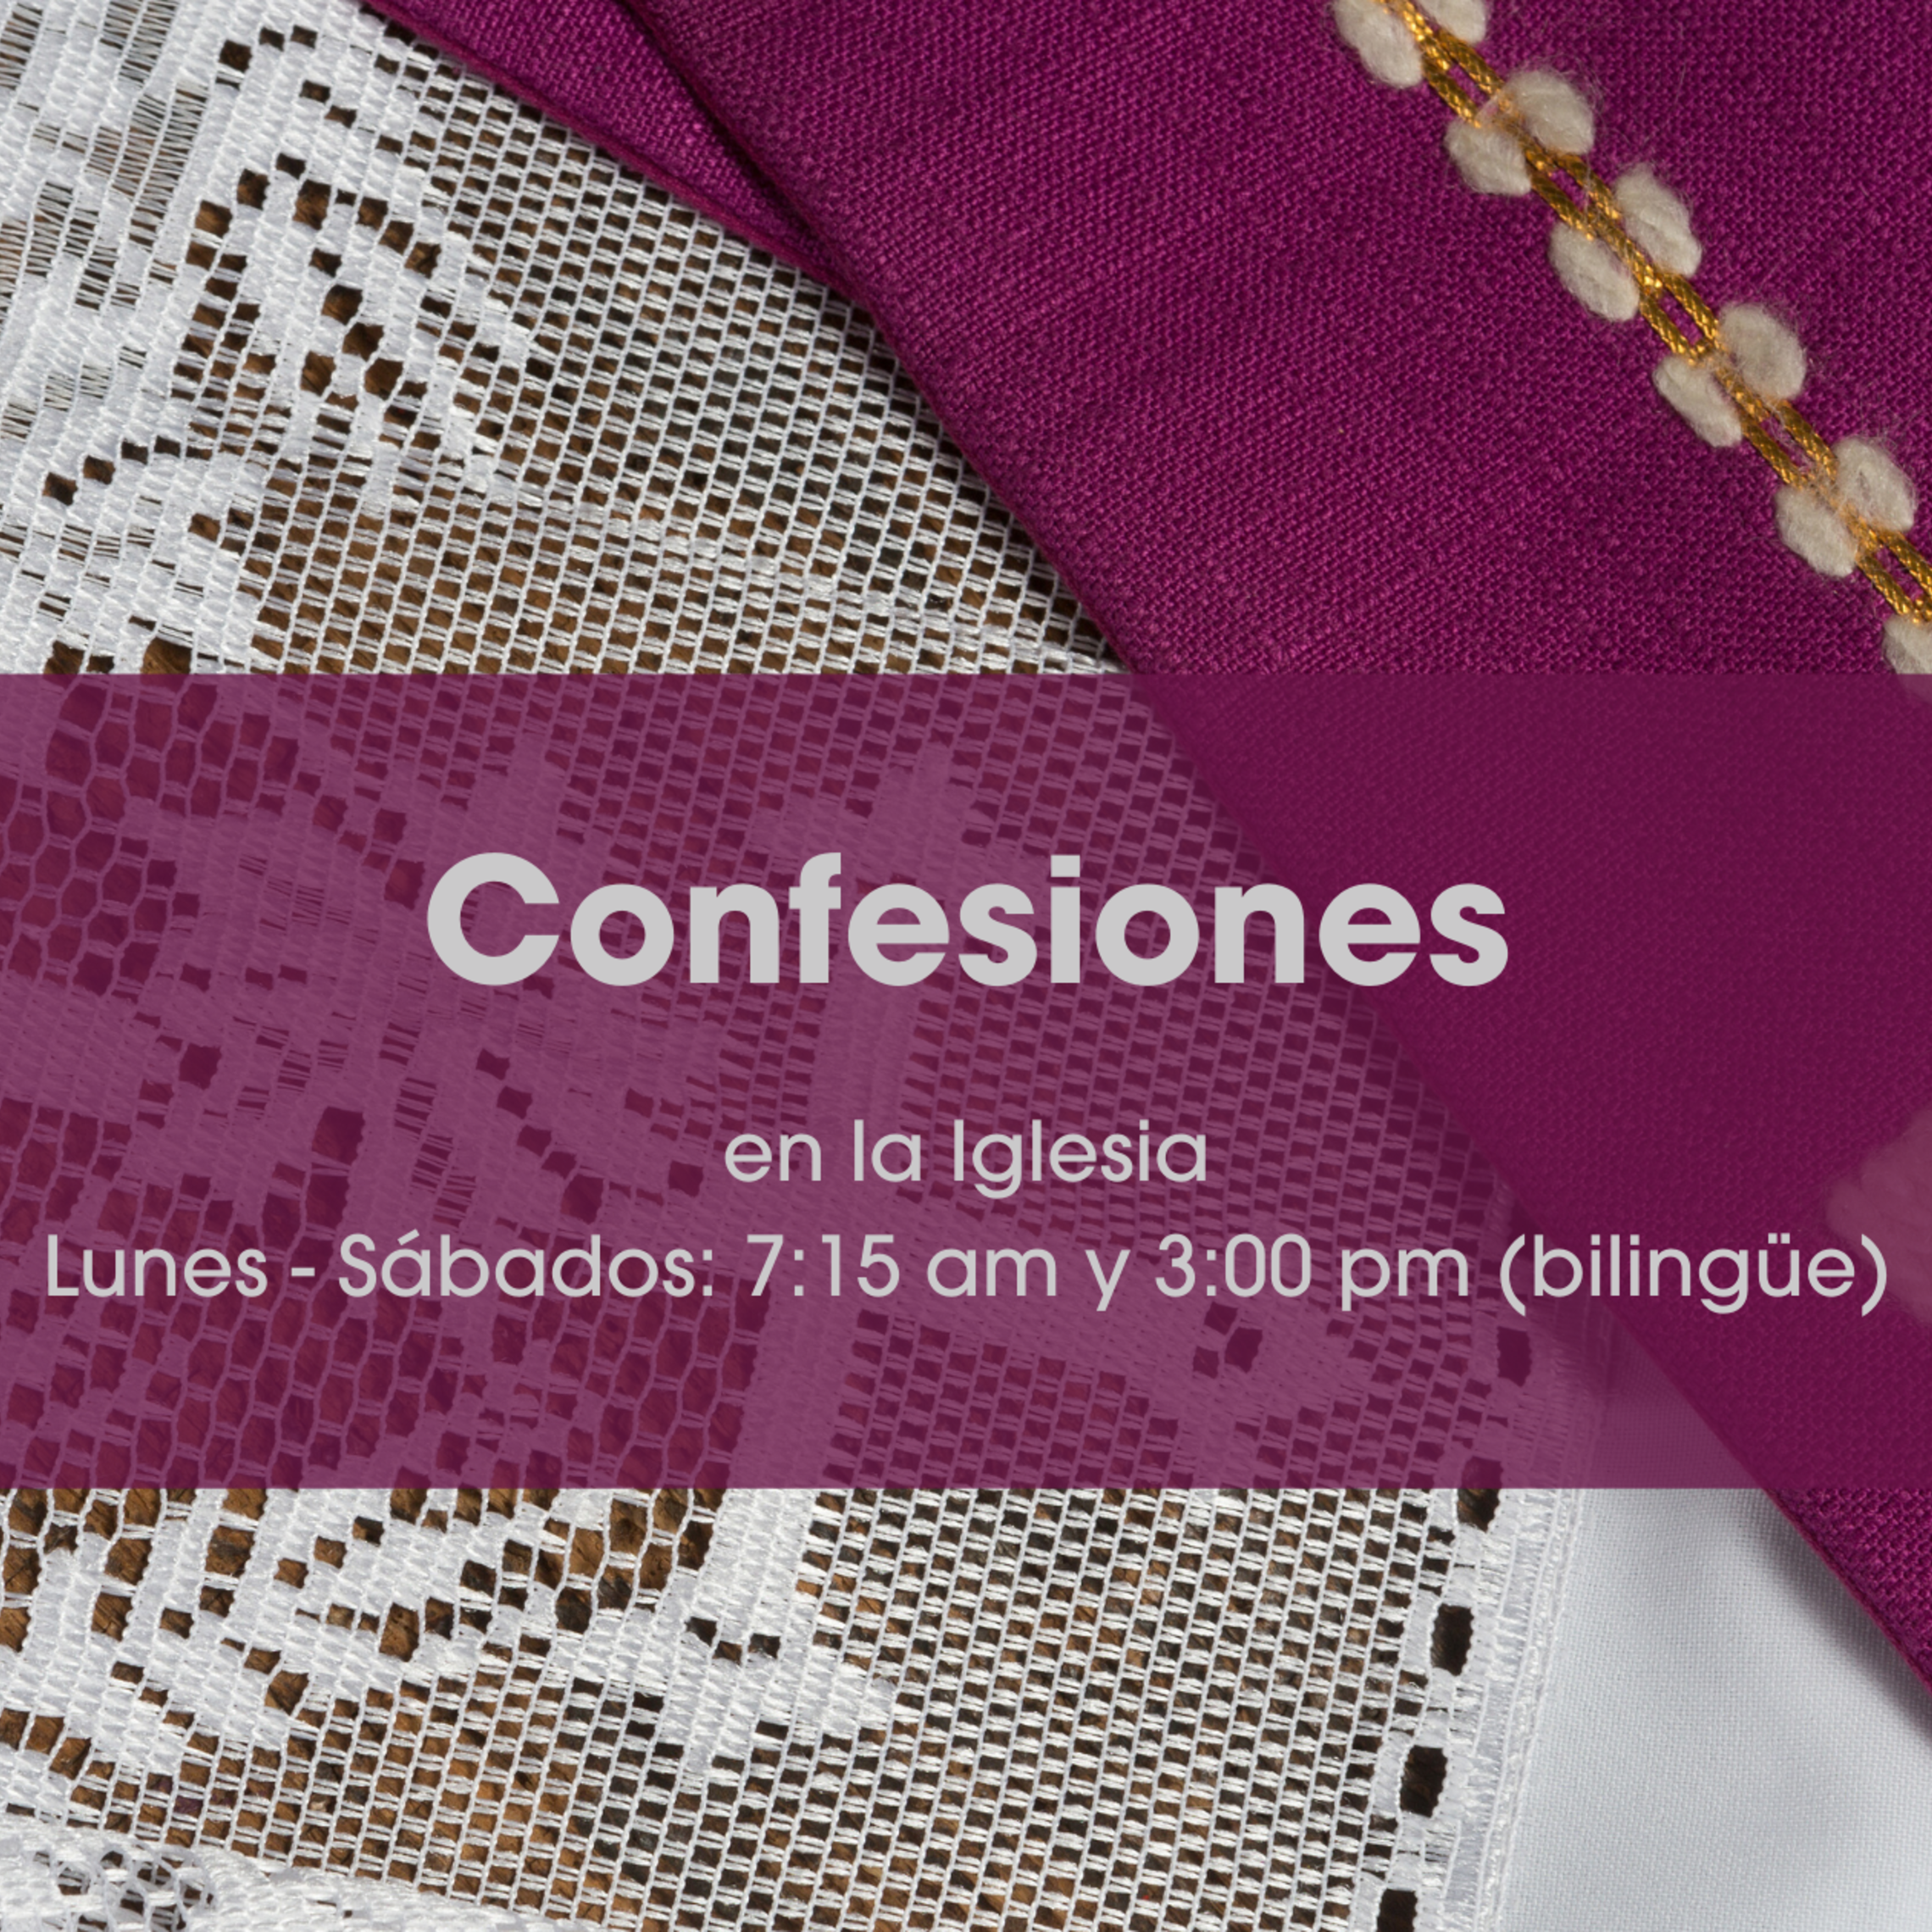 Confession July 6 - Spanish